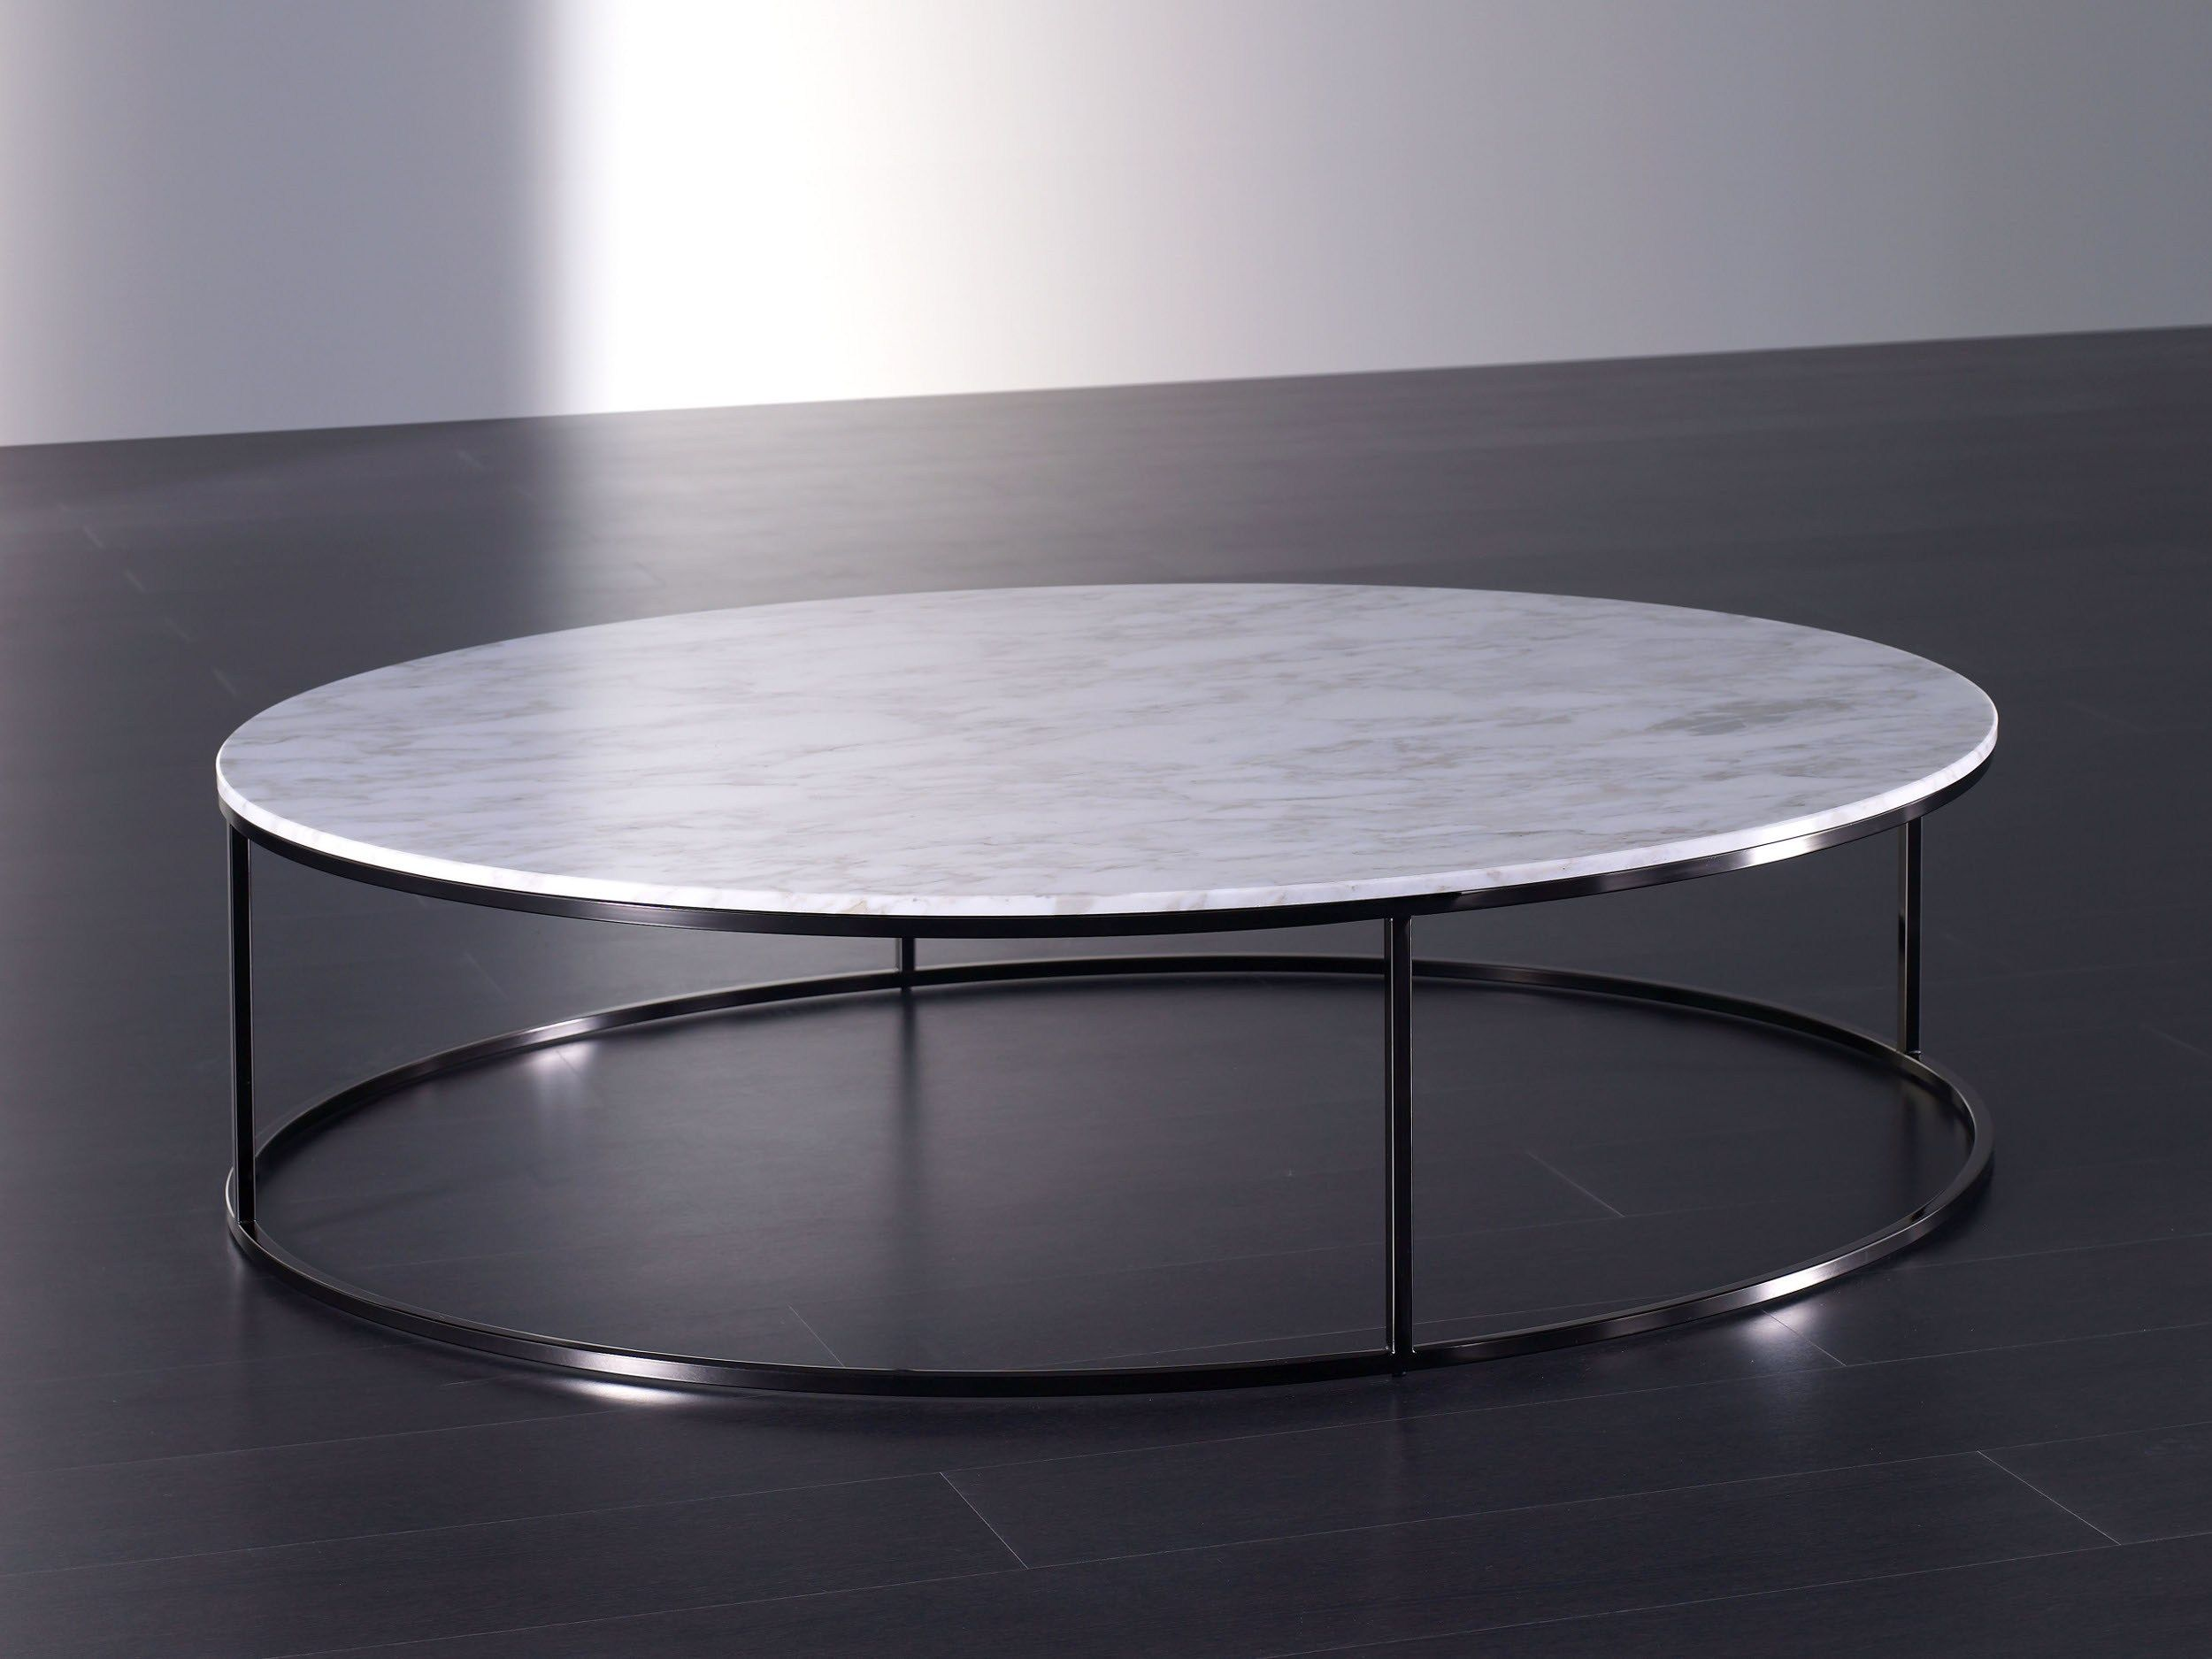 Coffee Table Tropical Round Marble Coffee Tables For Sale And Modern Round Marble Top Coffee Coffee Tables For Sale Coffee Table Furniture Marble Coffee Table [ 1875 x 2500 Pixel ]